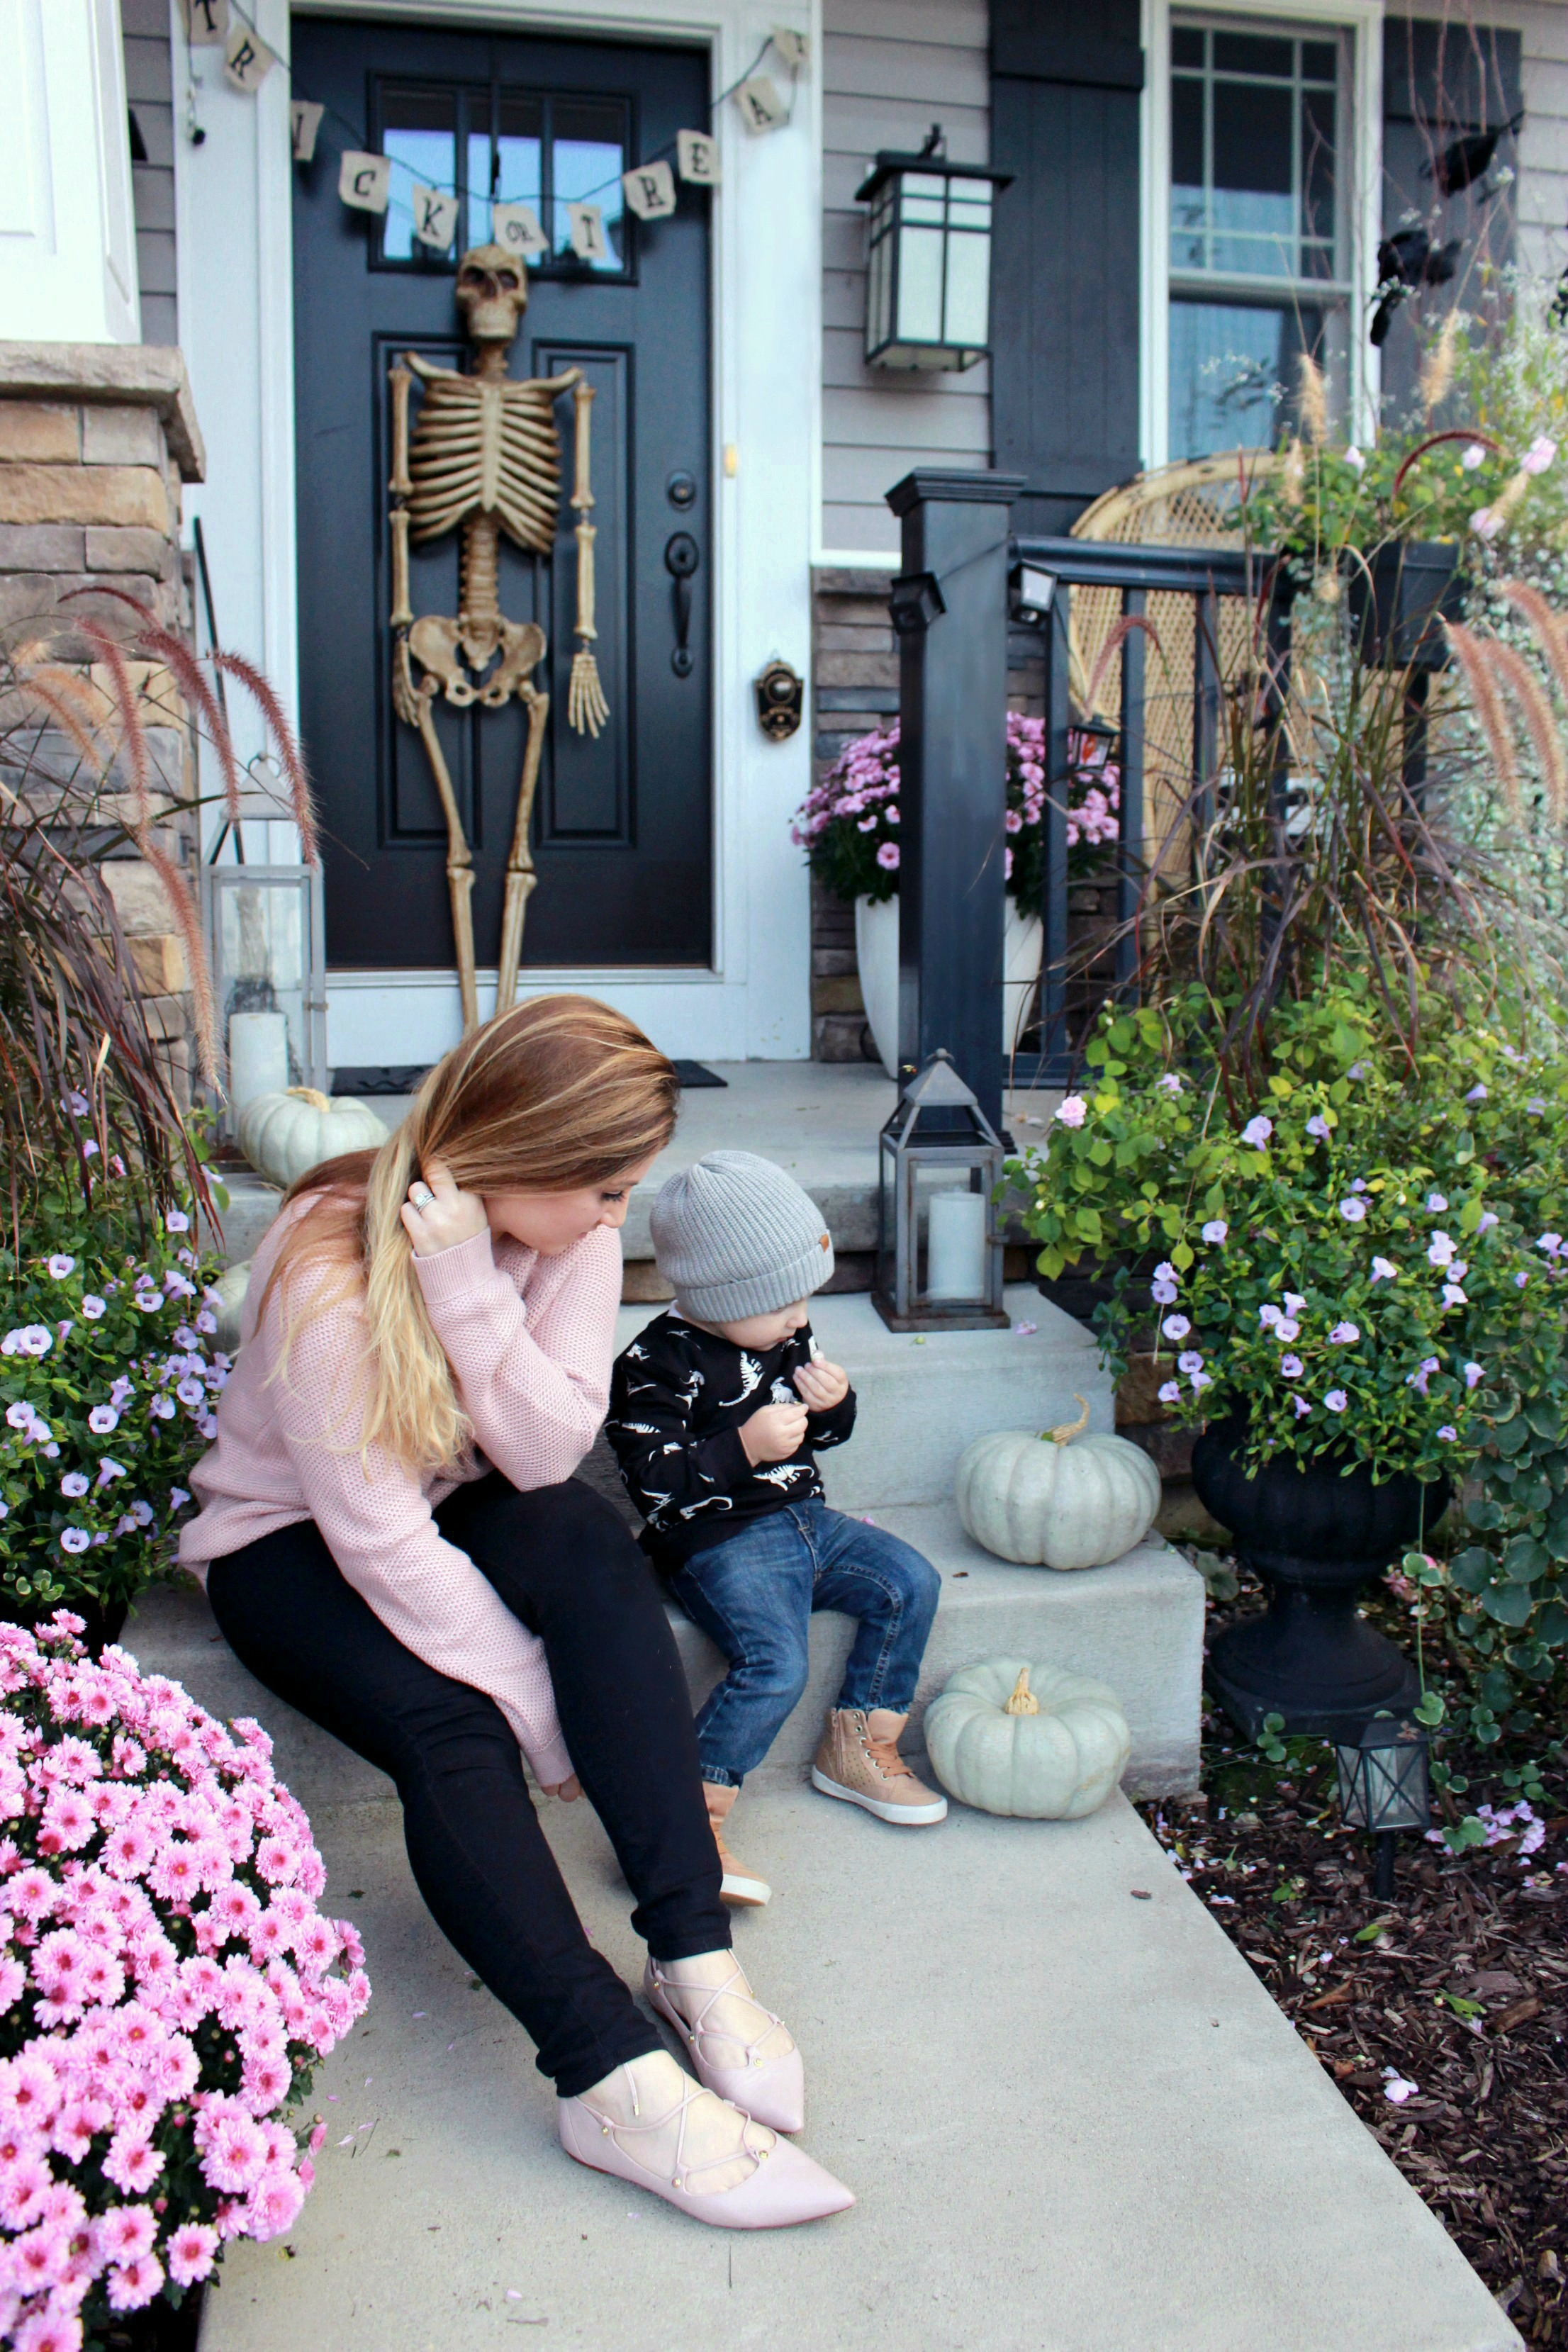 077e91360f5 Fall Front Porch Decorating with Unexpected Colors - Zoe With Love